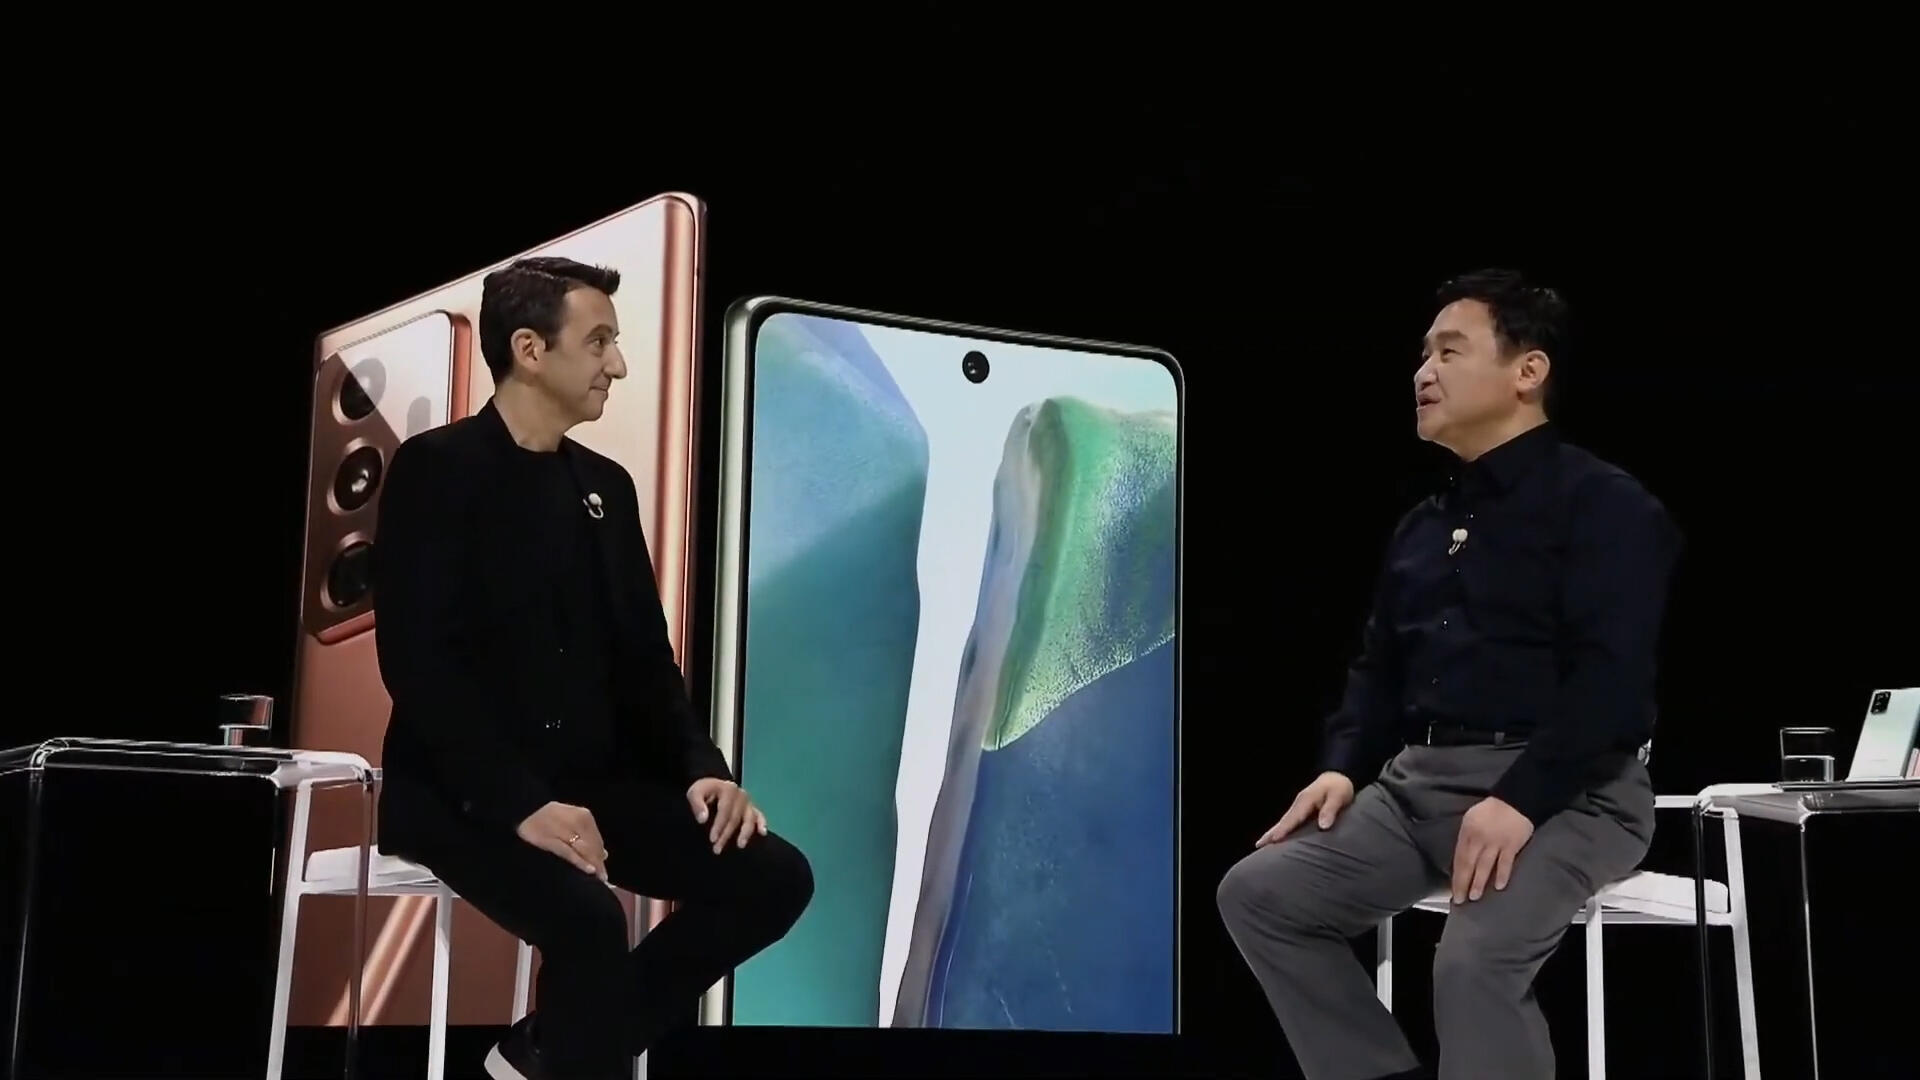 Video: Samsung smartphone chief talks new Galaxy product lineup